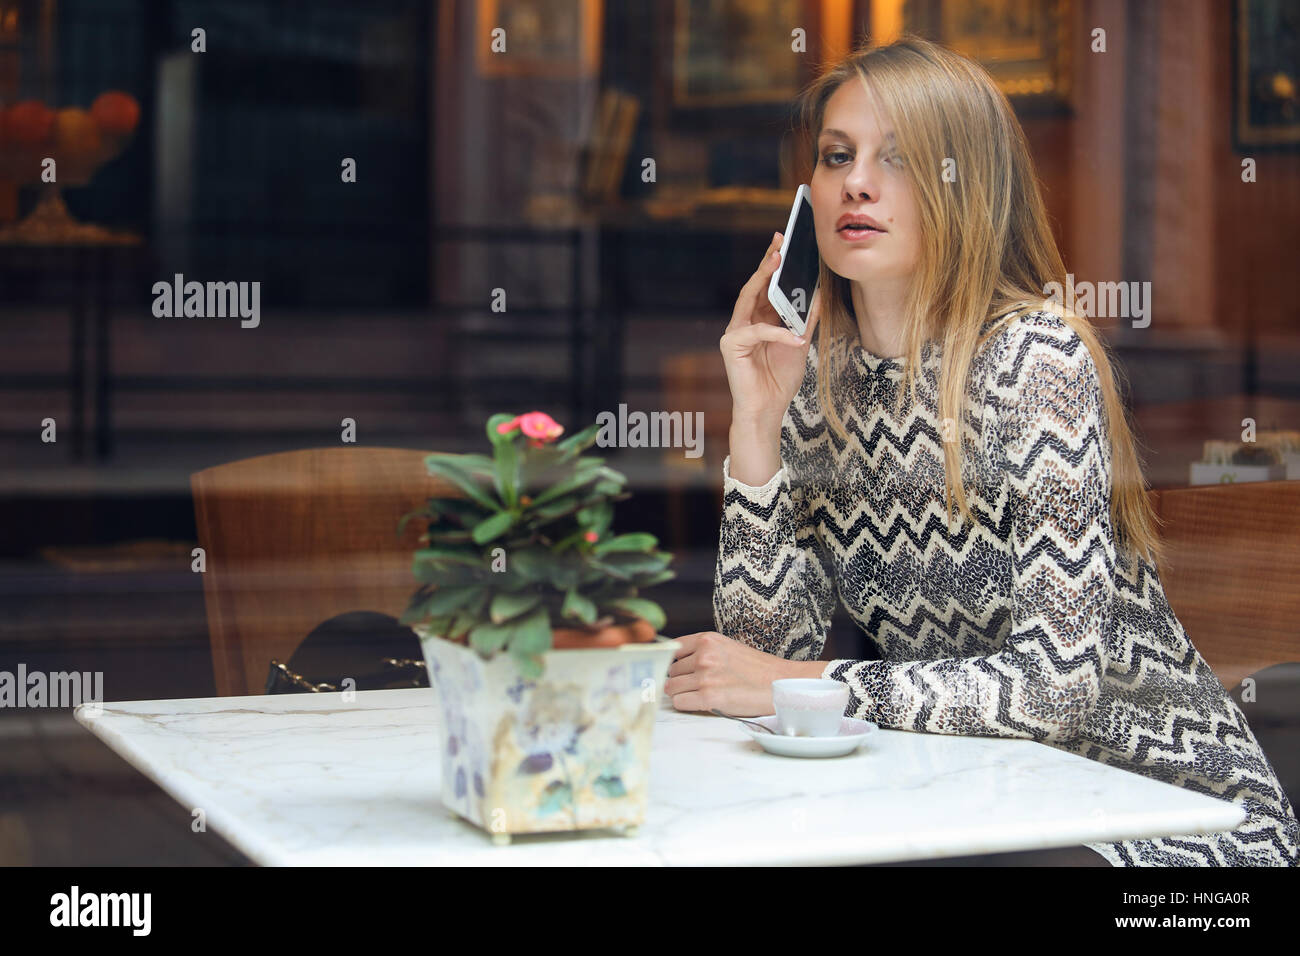 Beautiful woman calling with her smartphone. City cafe - Stock Image